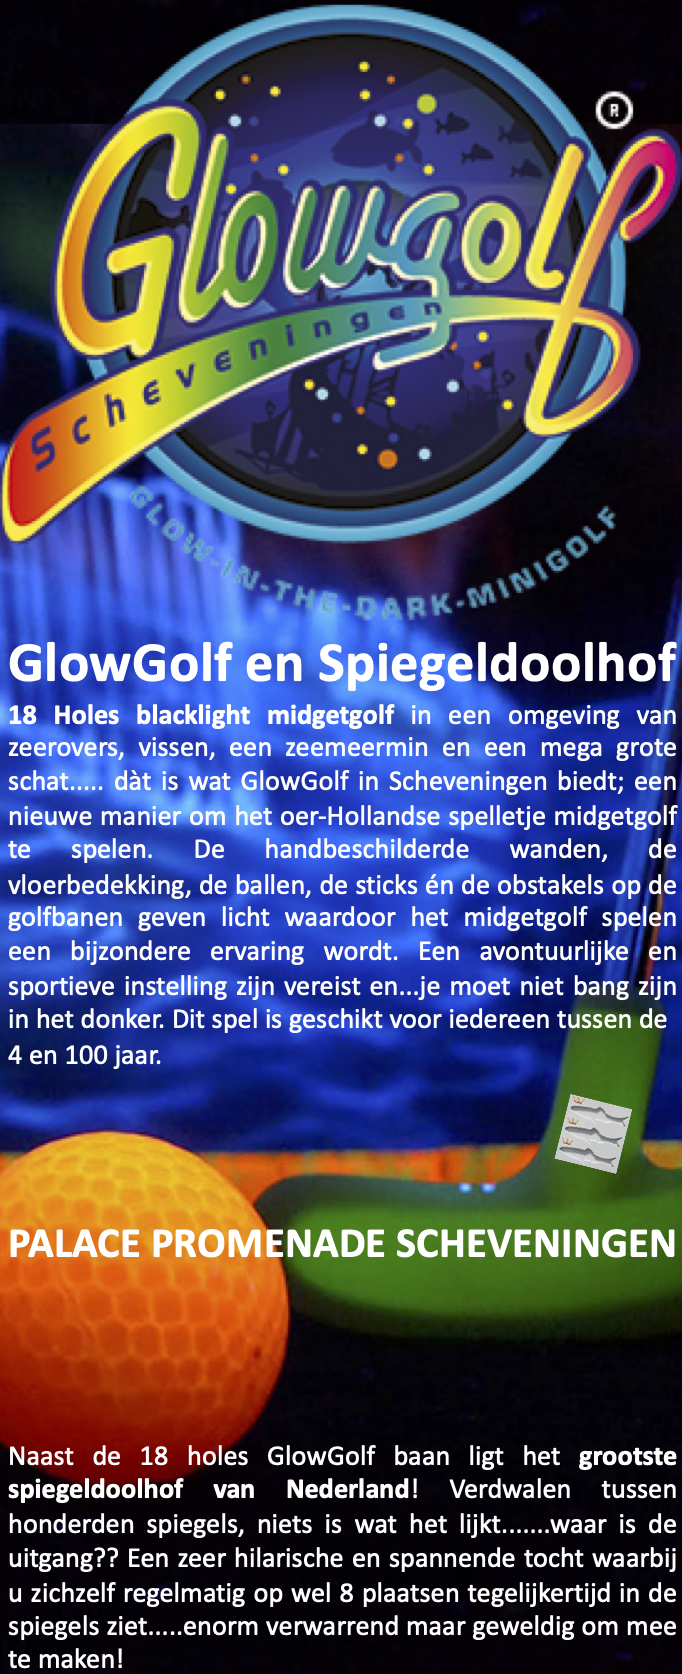 GlowGolf in the Dark Scheveningen SpiegelDoolhof Palace Promenade